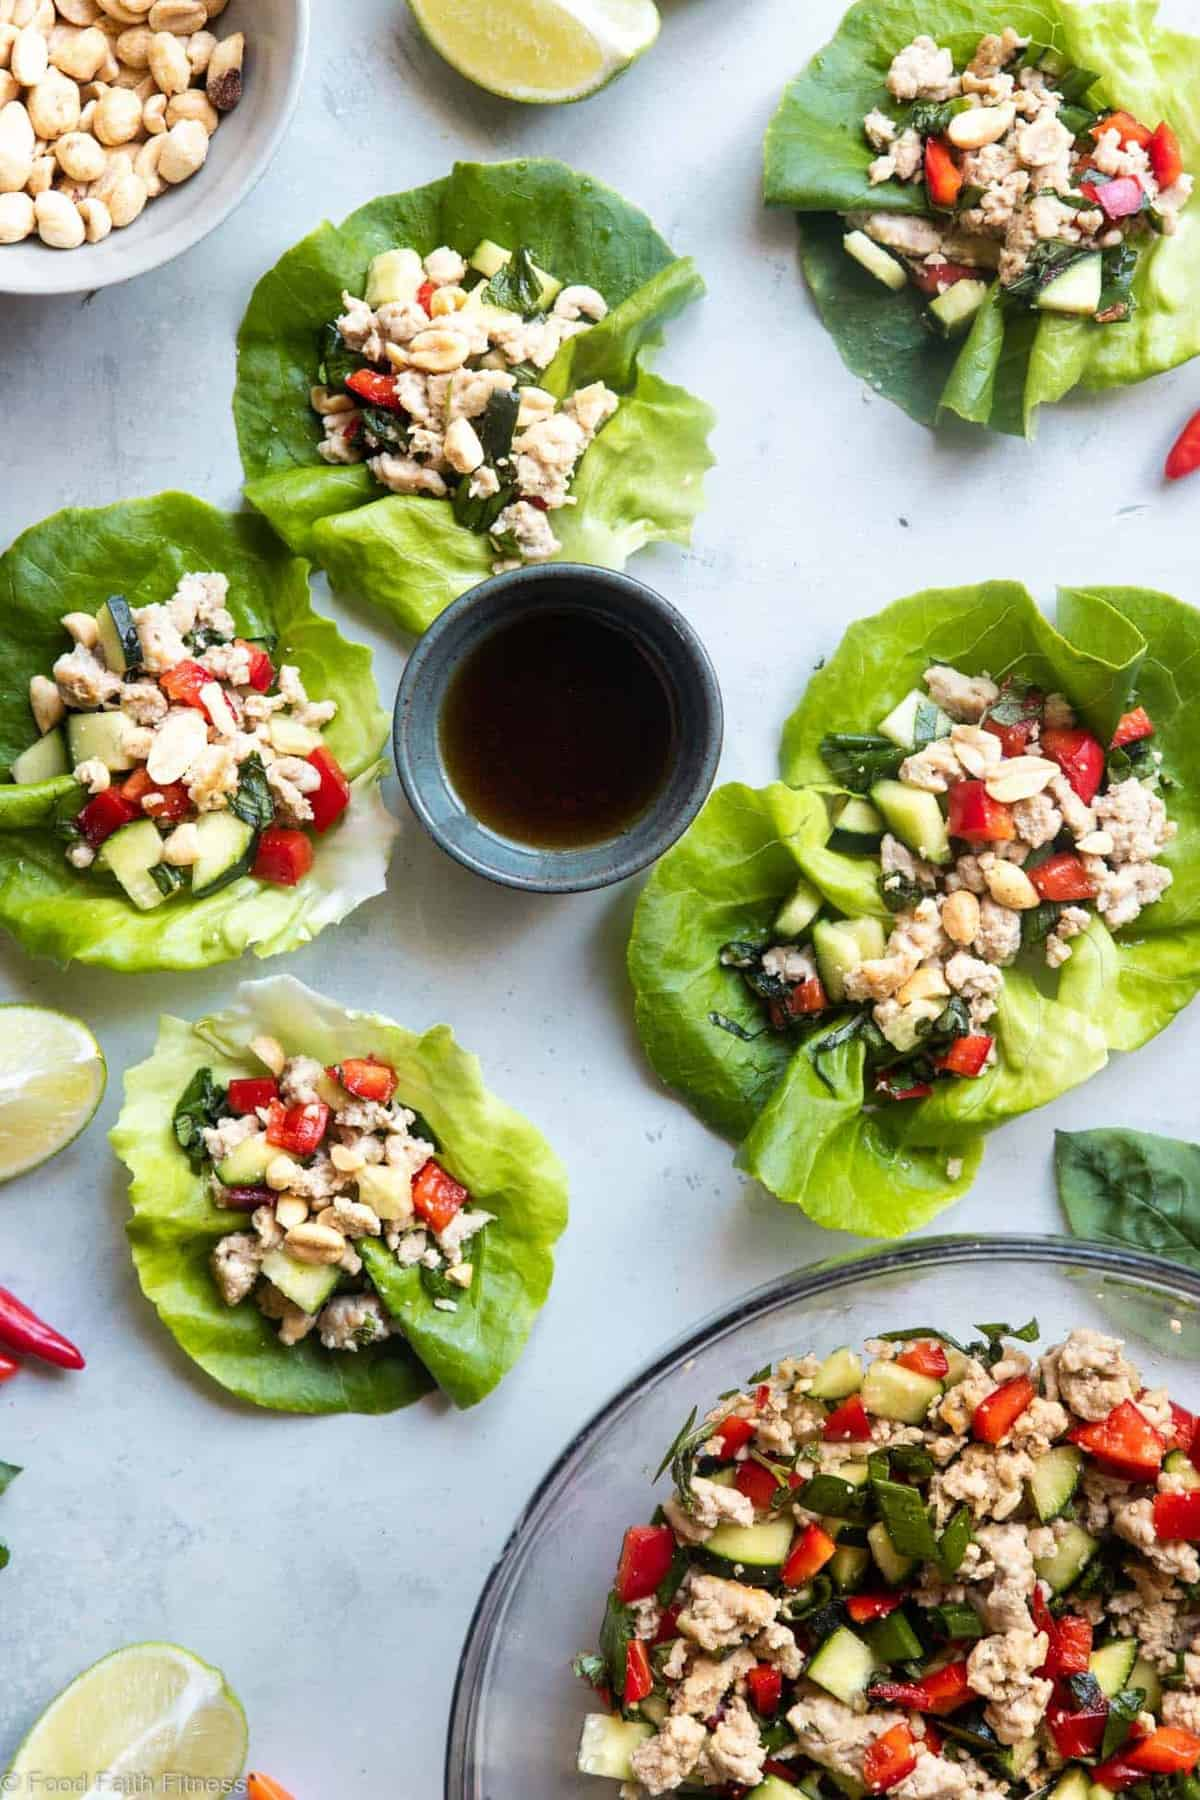 Low Carb Chicken Larb Thai Lettuce Wraps - An easy, healthy twist on a classic Thai salad! They're low carb, paleo friendly and super easy to make! Great for quick weeknight dinners!   #Foodfaithfitness   #glutenfree #lowcarb #paleo #healthy #Thai